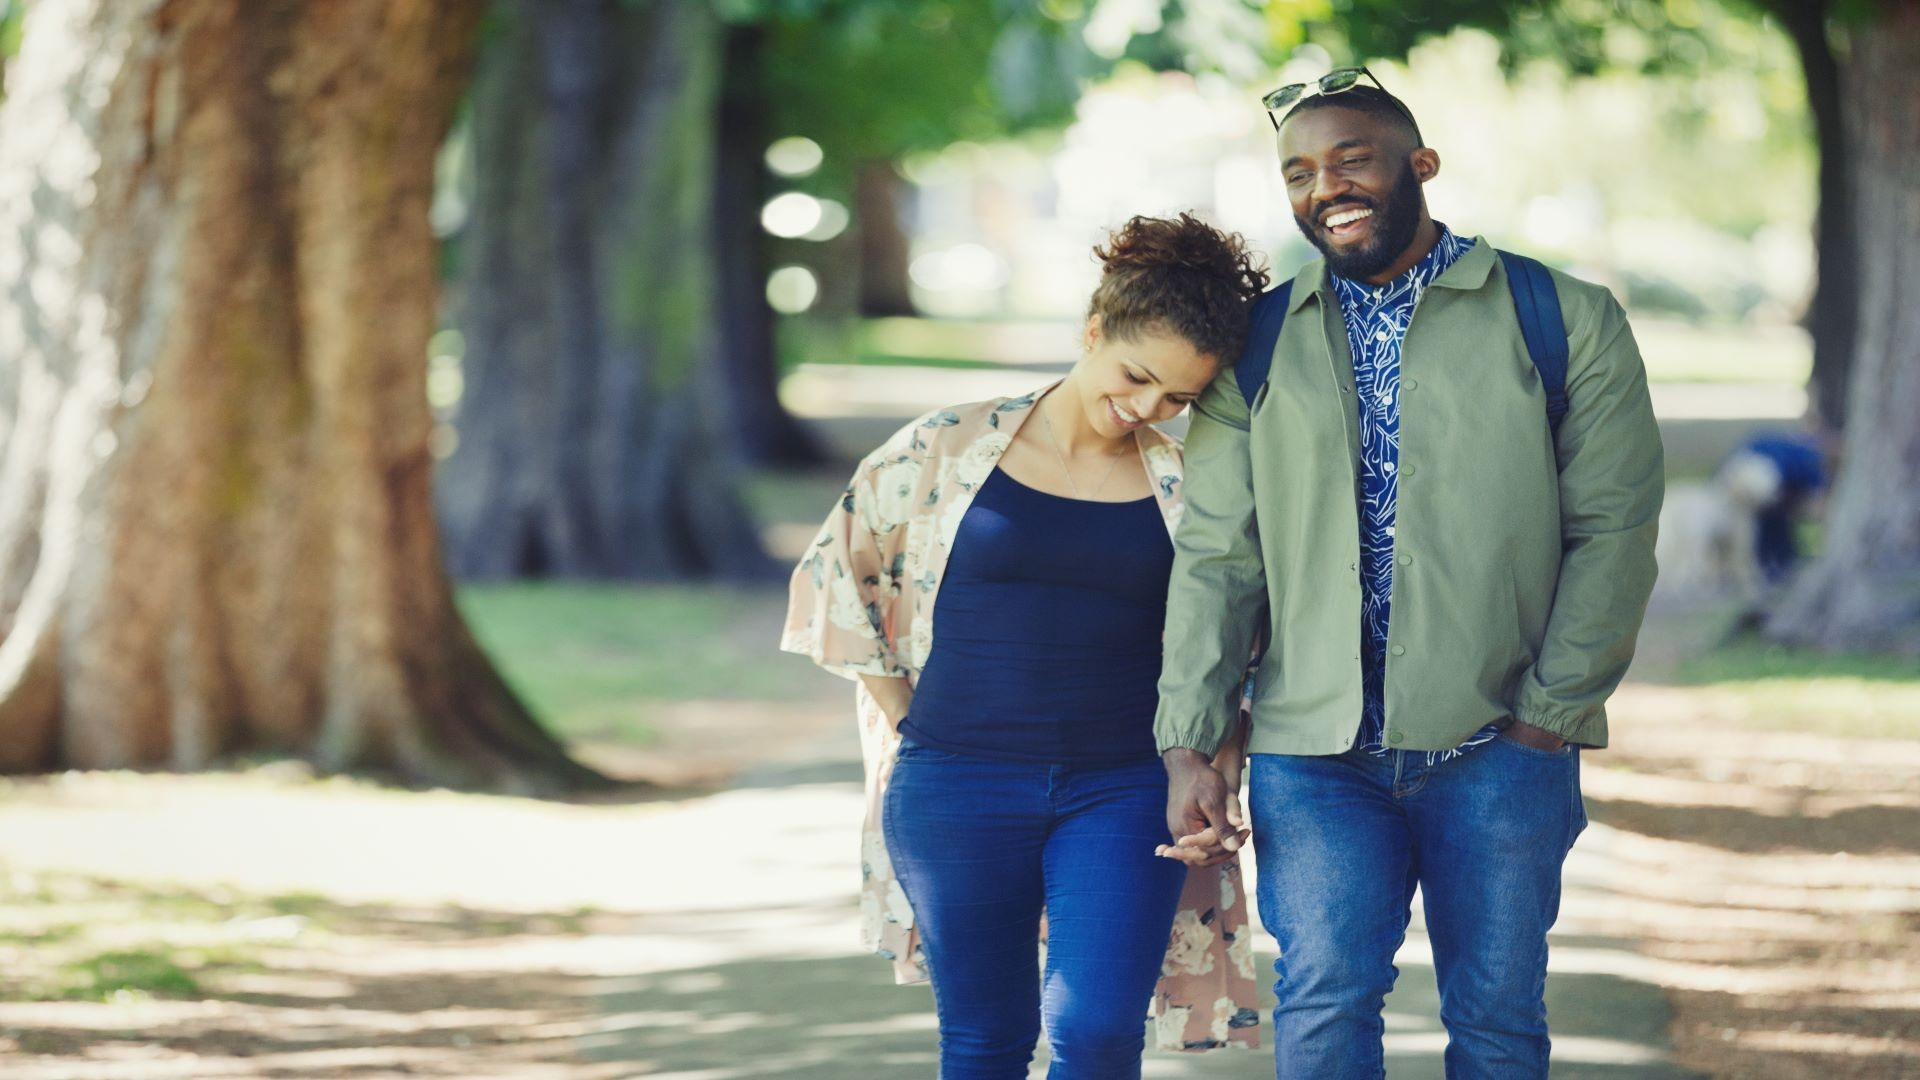 Image of woman and man walking together in a park